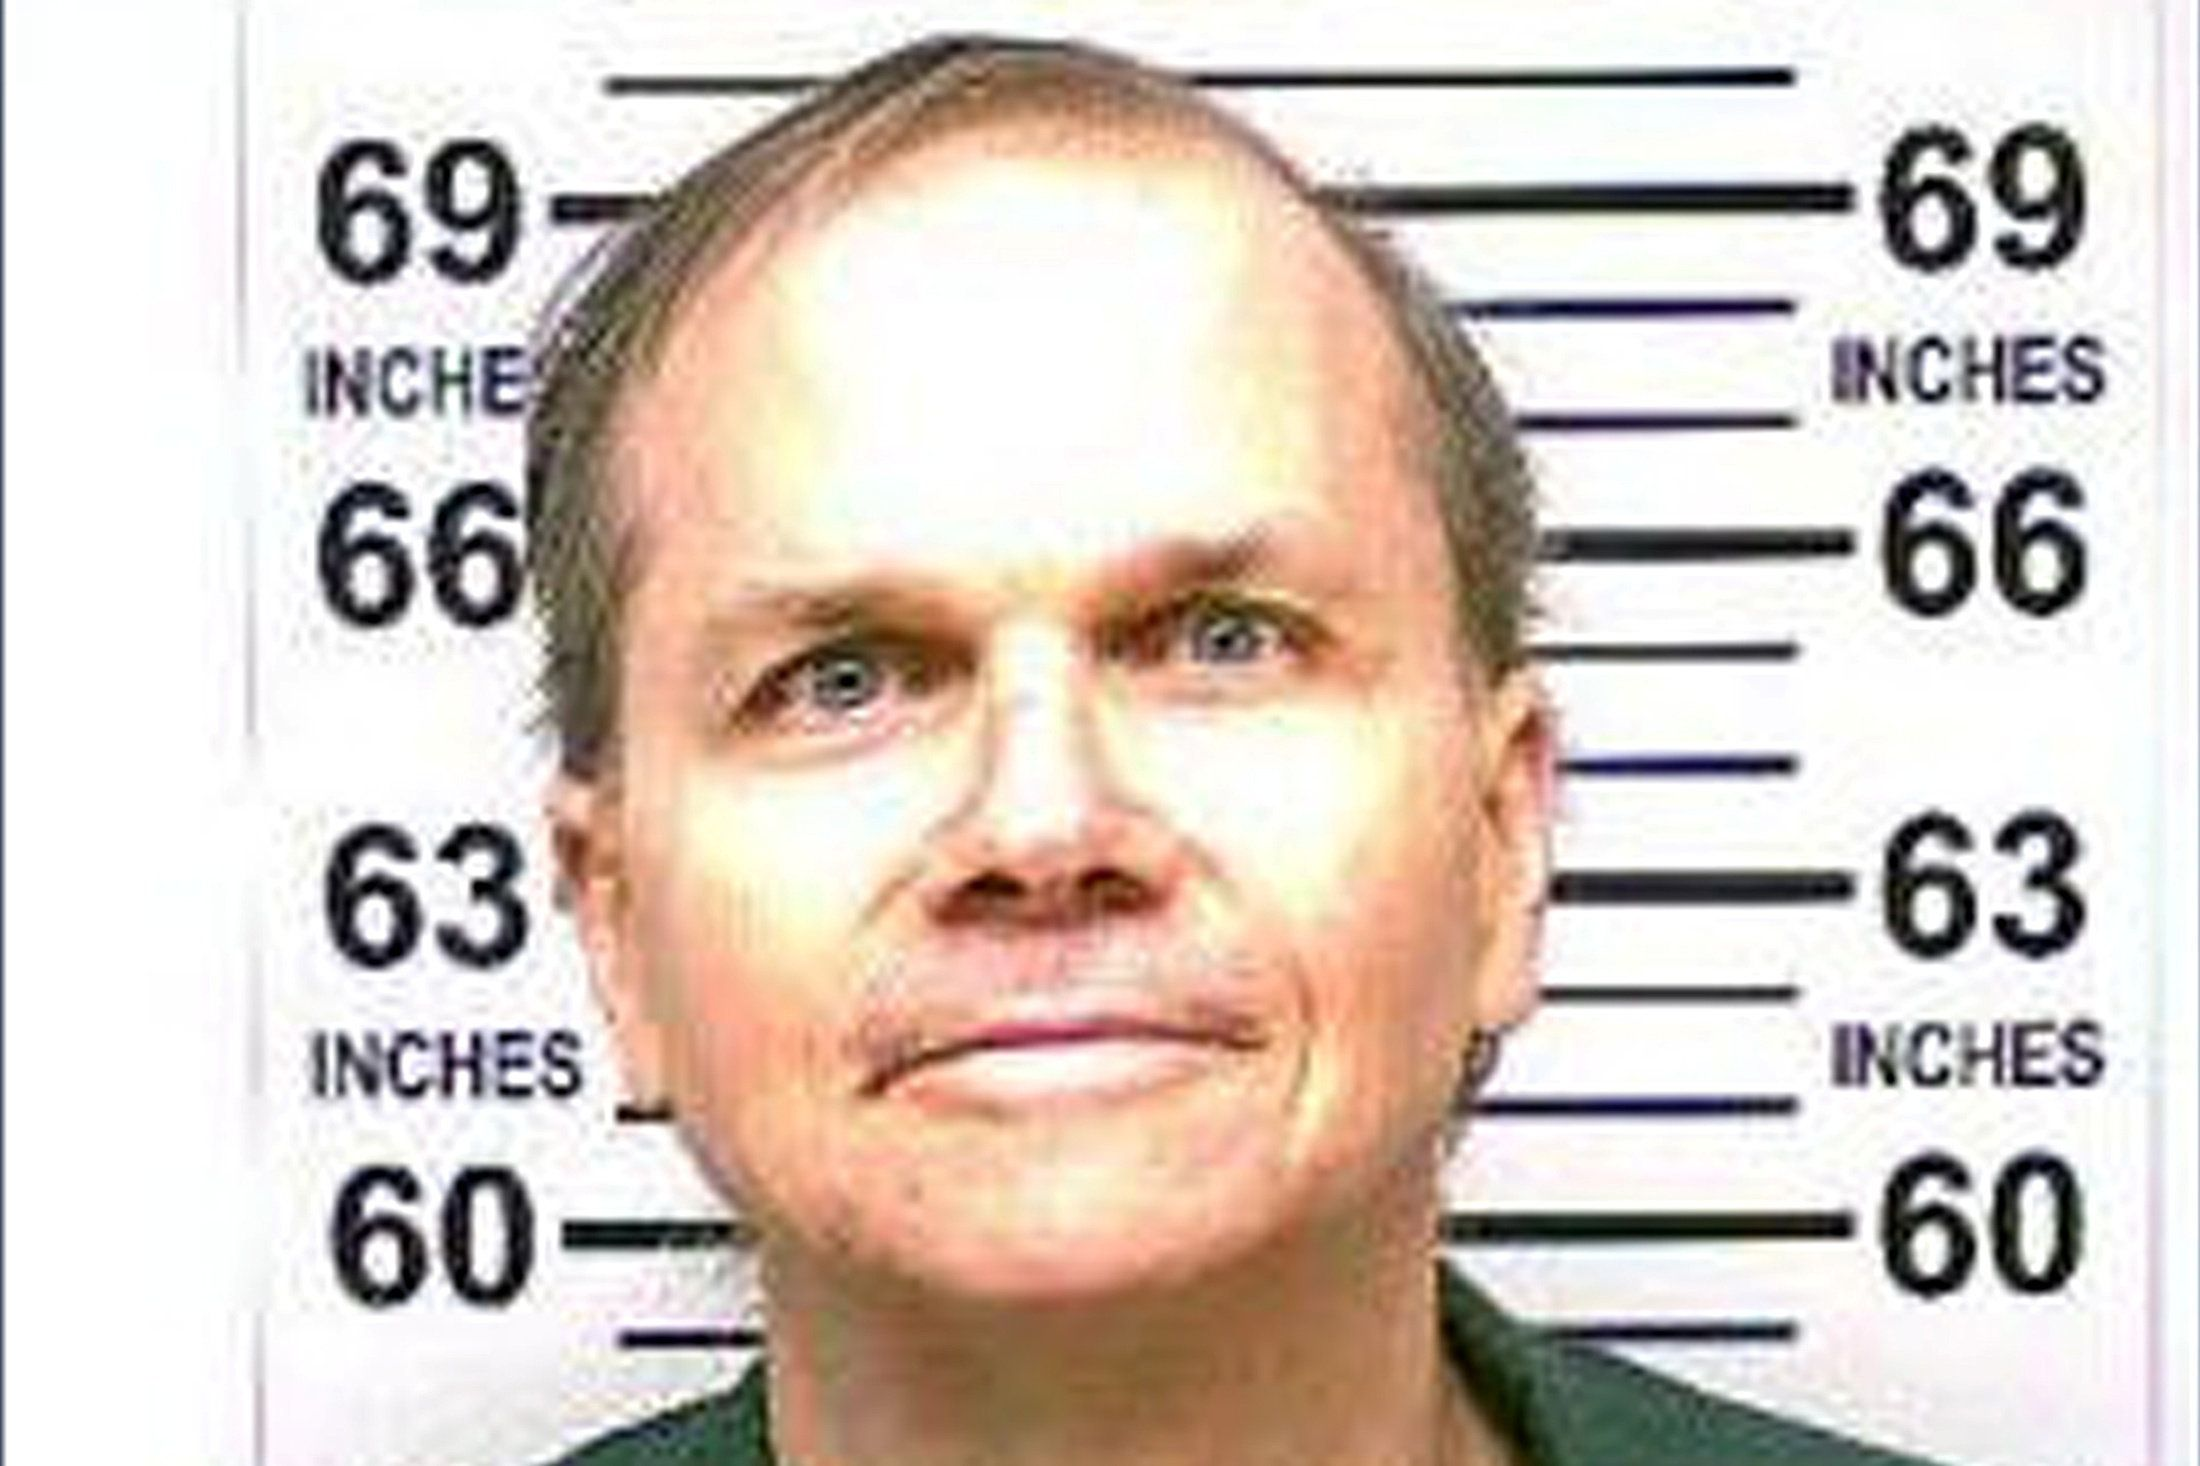 Mark David Chapman, who murdered John Lennon in 1980 is seen in this January 2018 picture released by New York State Department of Corrections and Community Supervision in Albany, New York, U.S., July 26, 2018.  Courtesy New York State Department of Corrections and Community Supervision/Handout via REUTERS  ATTENTION EDITORS - THIS IMAGE HAS BEEN SUPPLIED BY A THIRD PARTY. THIS PICTURE WAS PROCESSED BY REUTERS TO ENHANCE QUALITY. AN UNPROCESSED VERSION HAS BEEN PROVIDED SEPARATELY